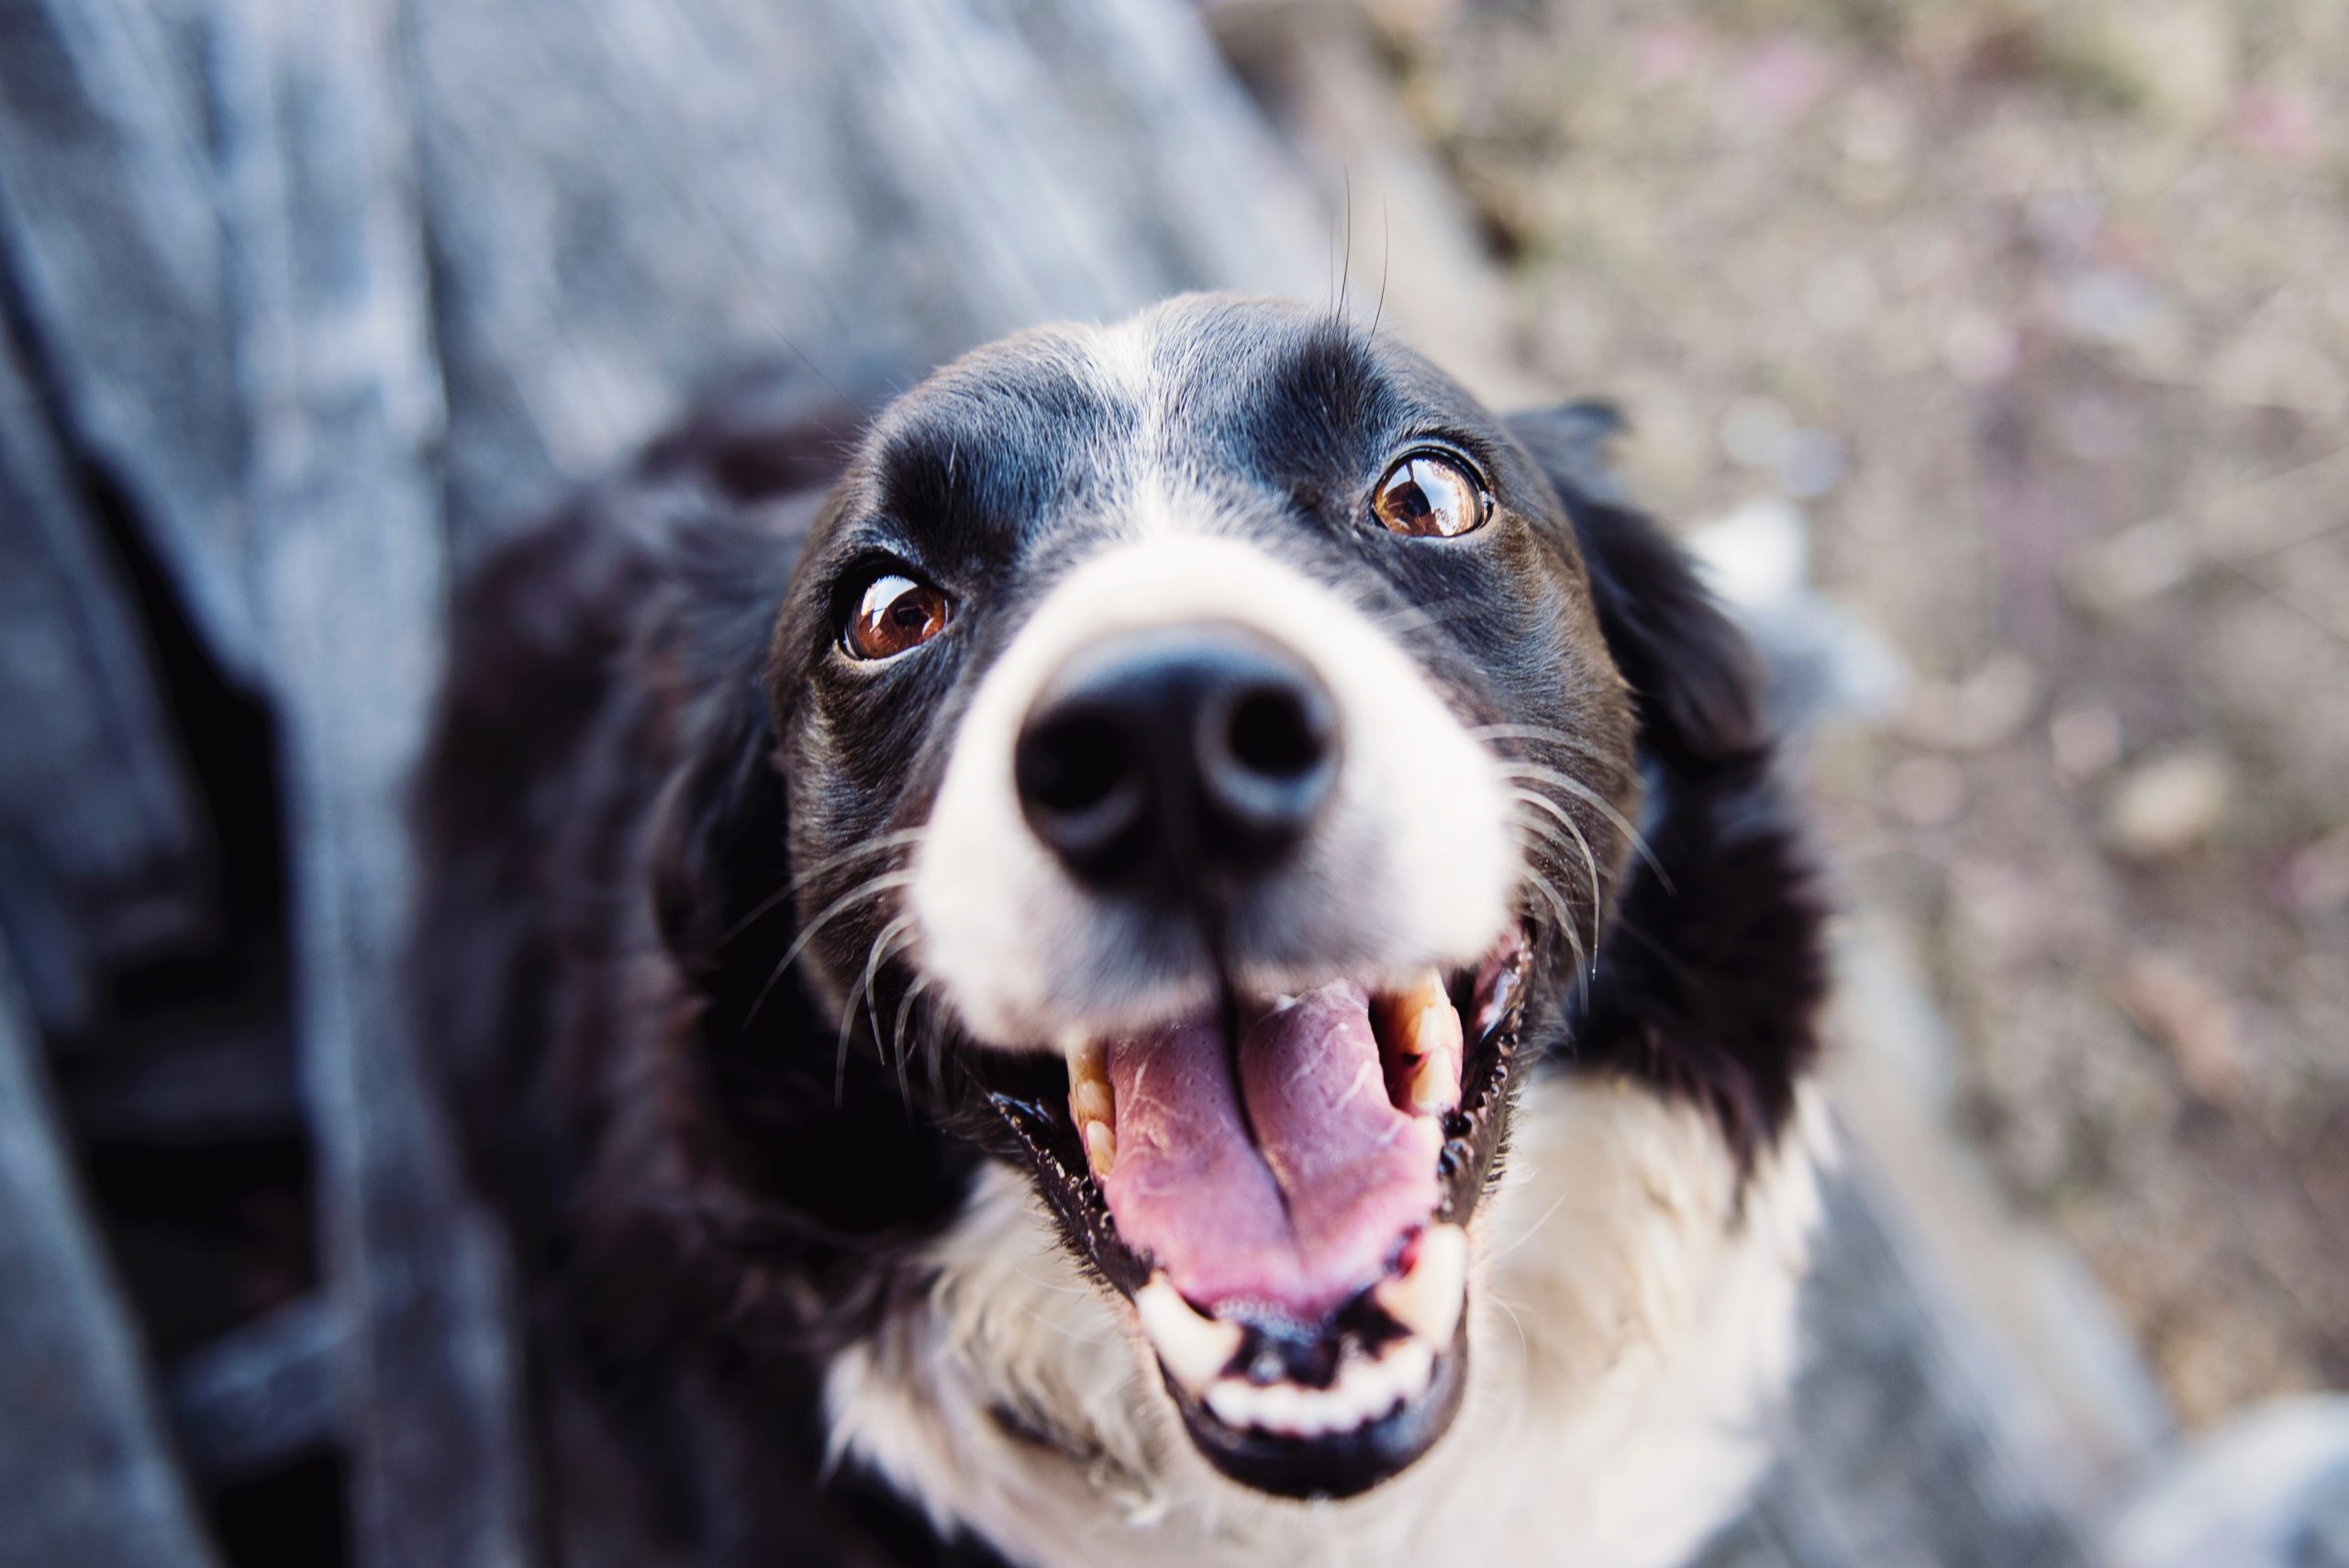 National Pet Dental Health Month: How To Take Care Of Your Pet's Teeth